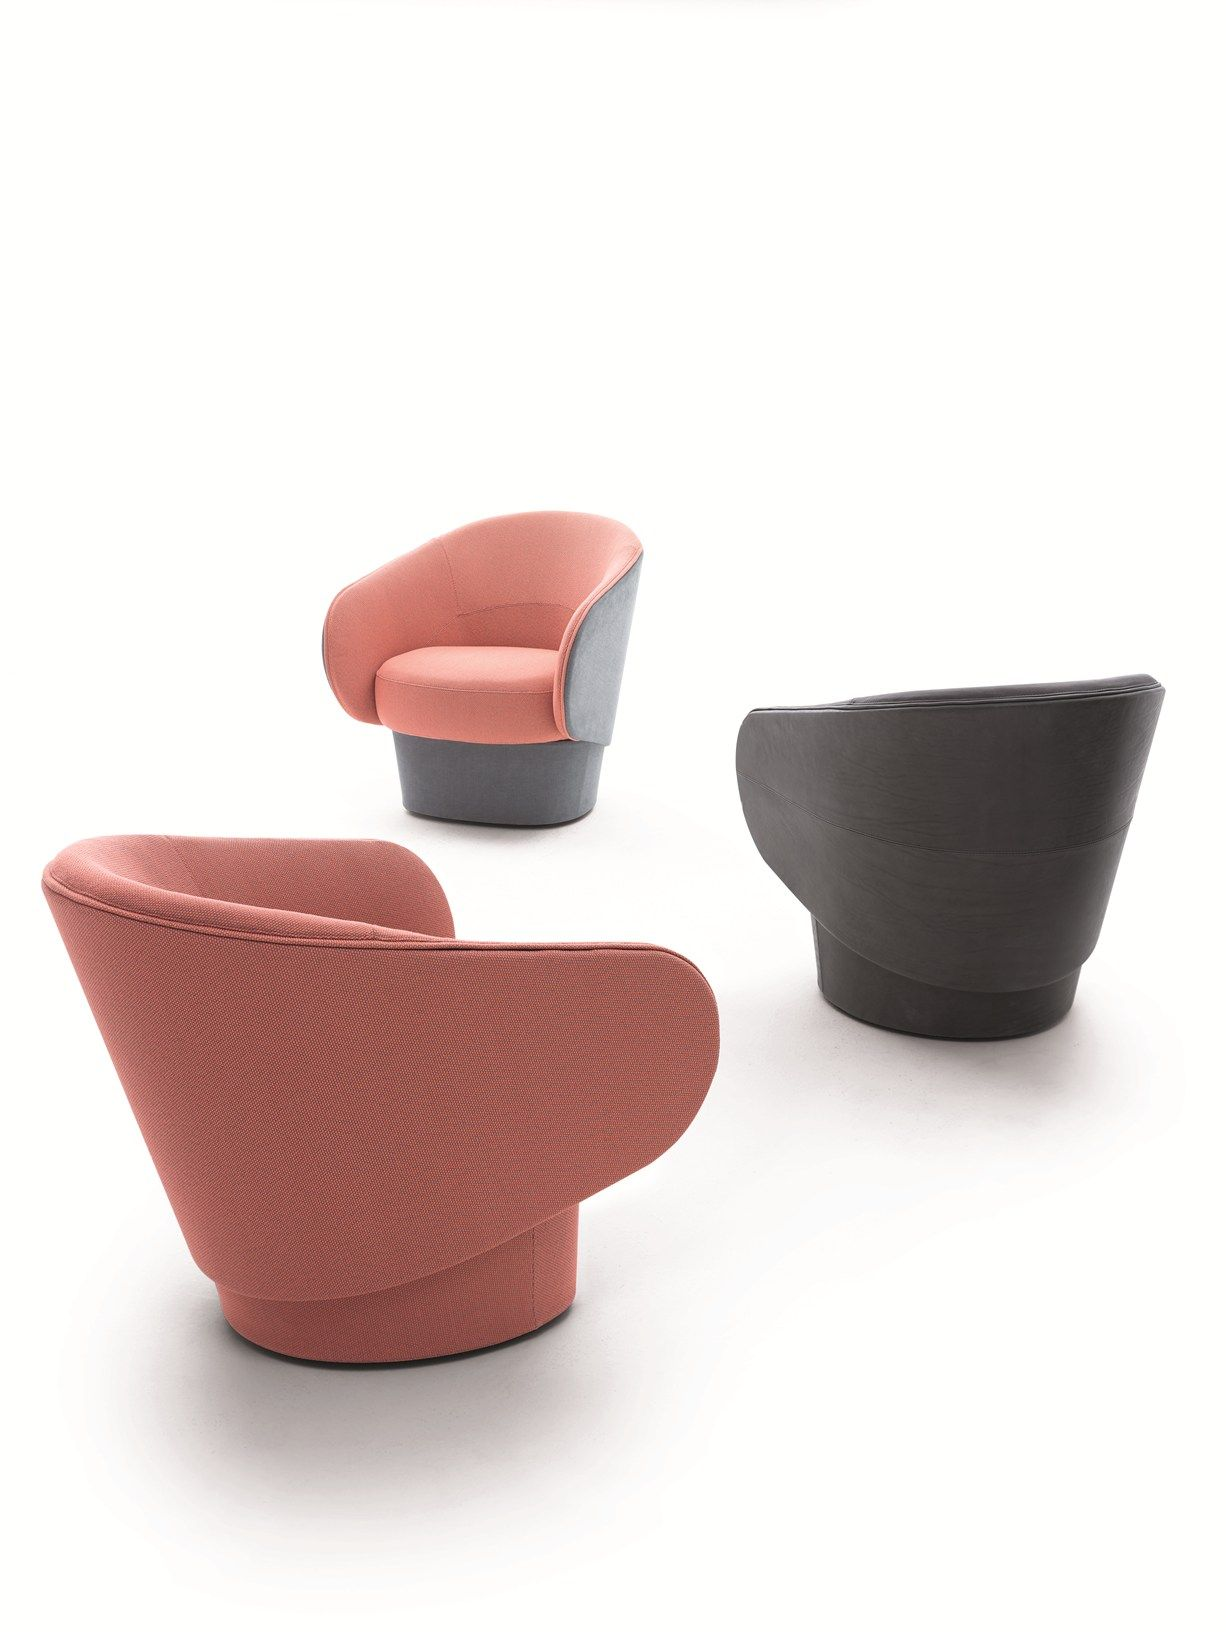 Fischer Haworth Sessel Please Take A Seat Cor Presents Its Wide Collection At Imm